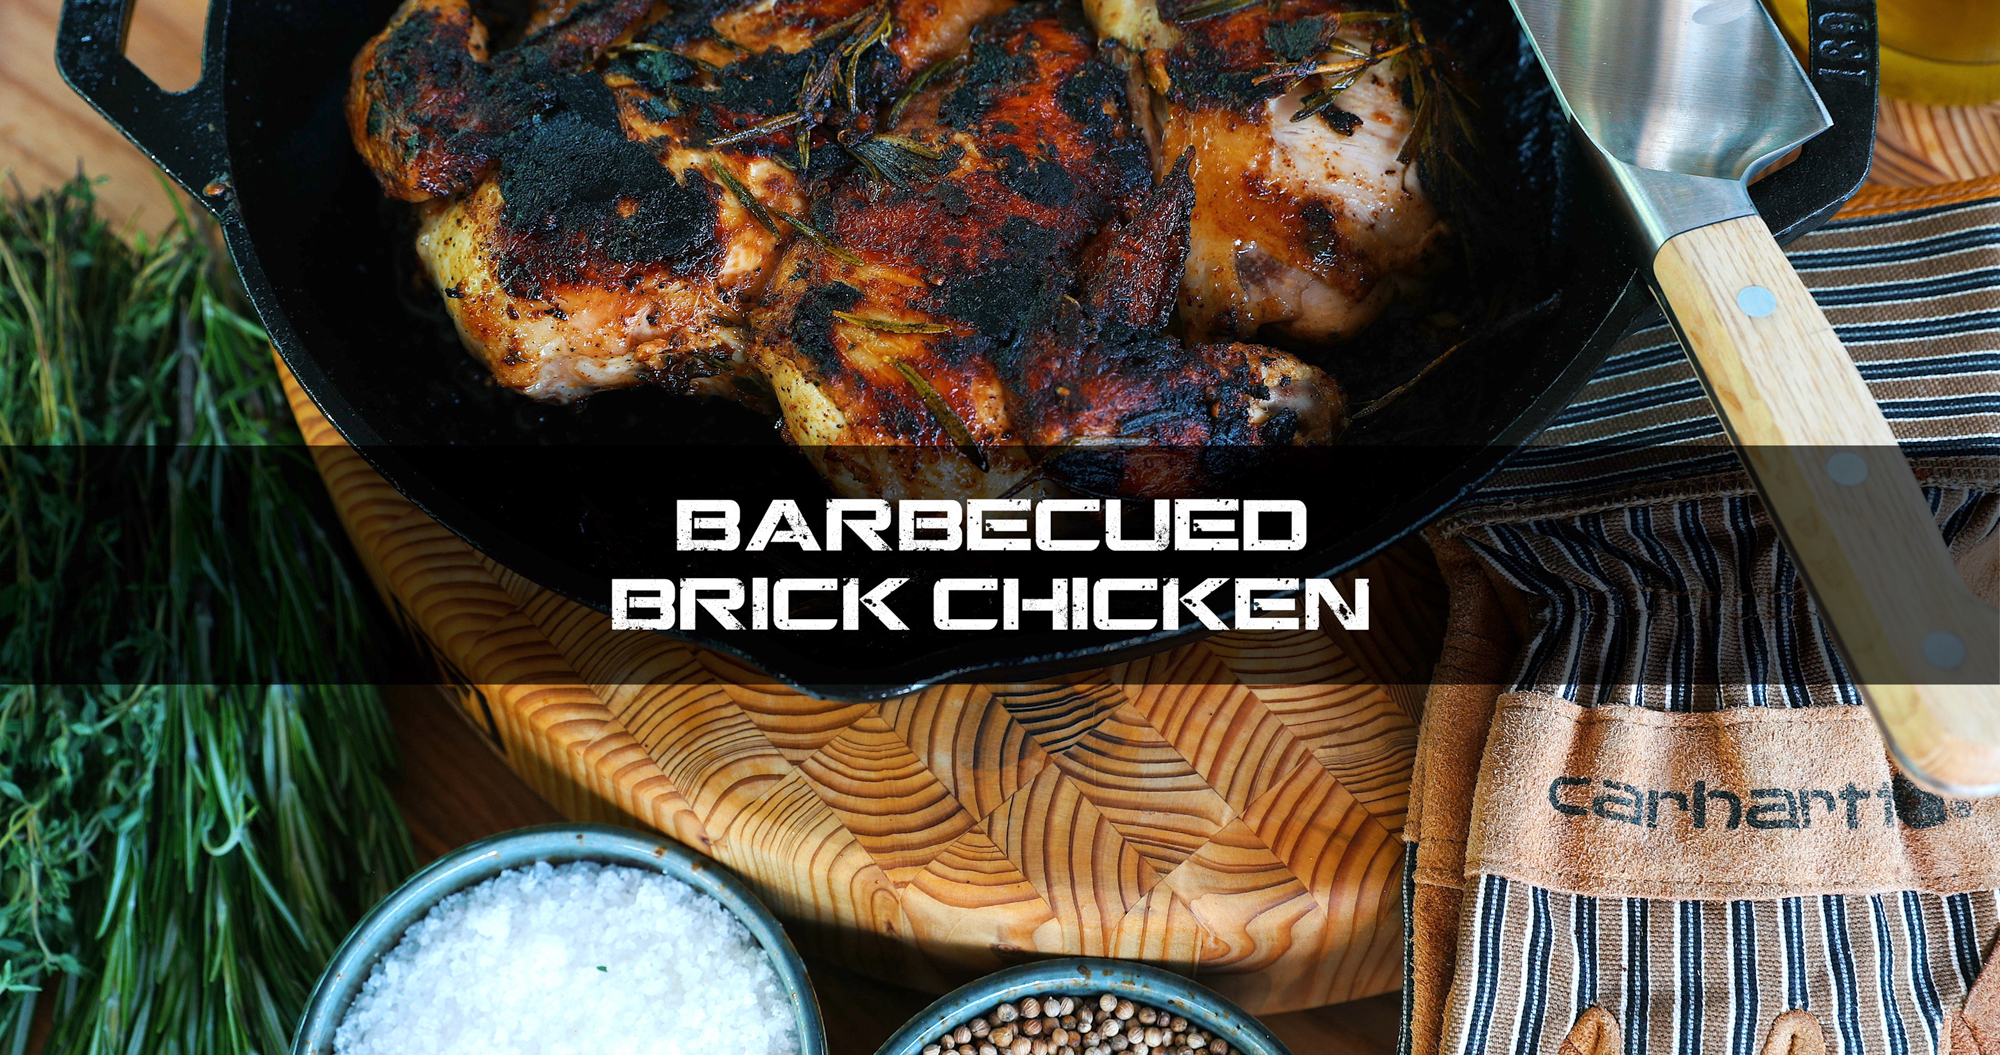 Barbecued Brick Chicken